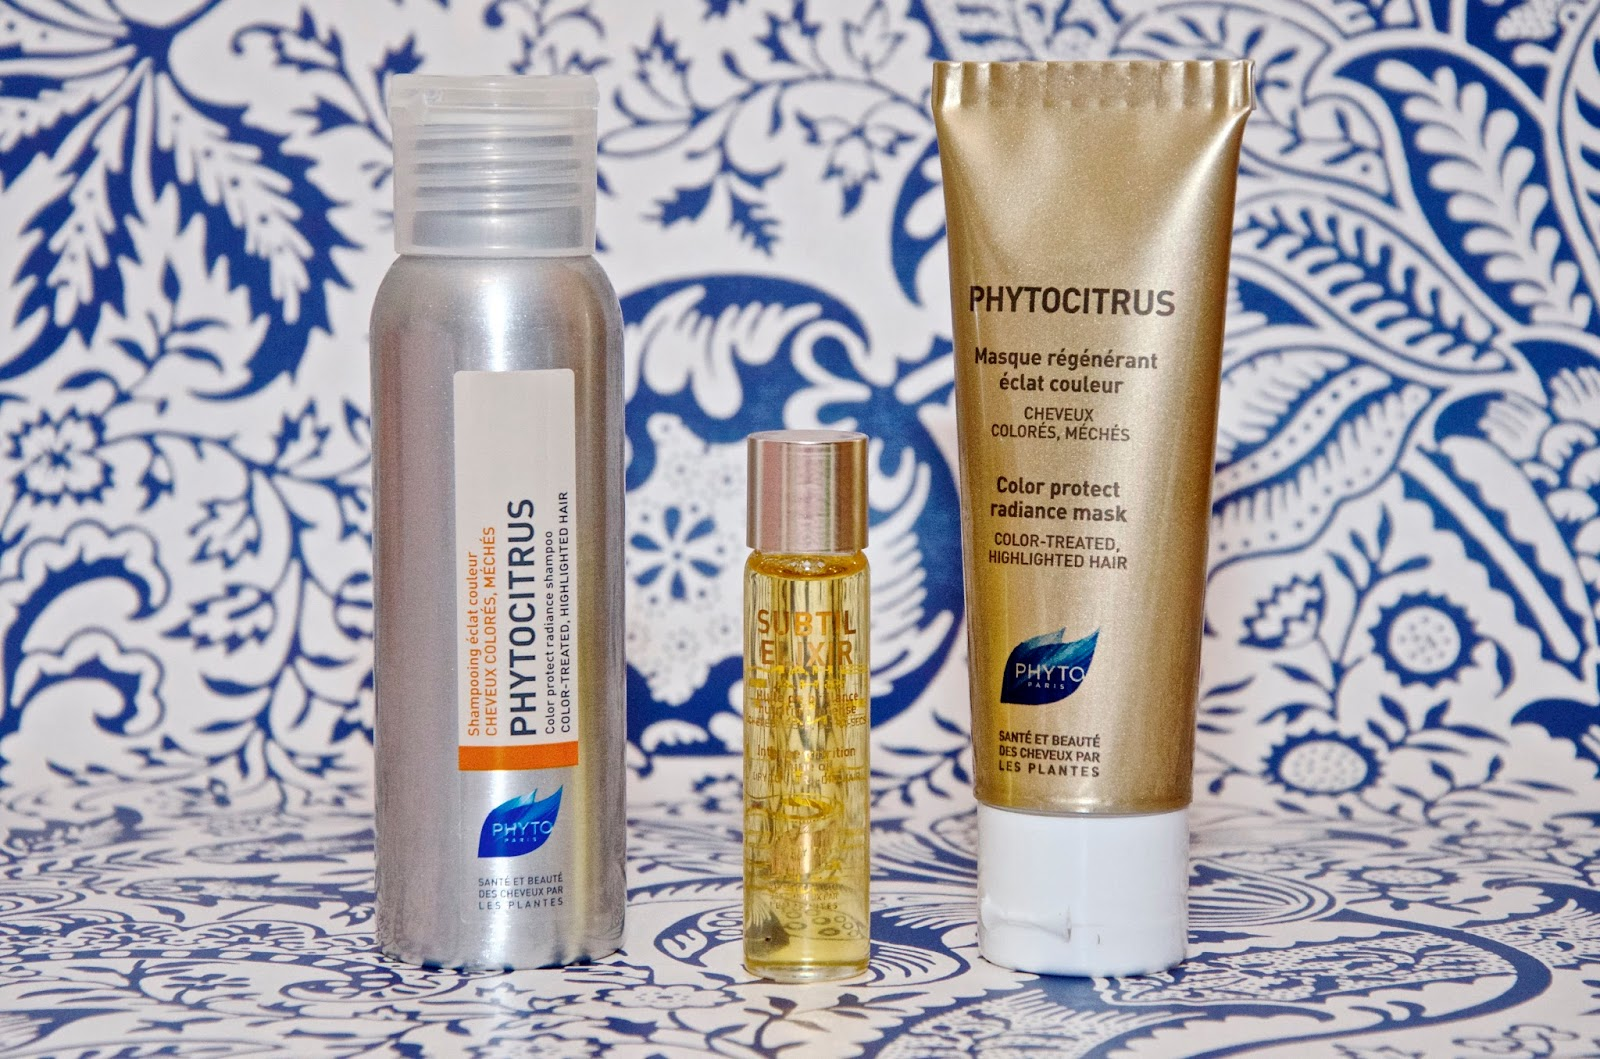 Phyto Shampoo, Phyto hair oil and Phyto hair mask on blue & white background